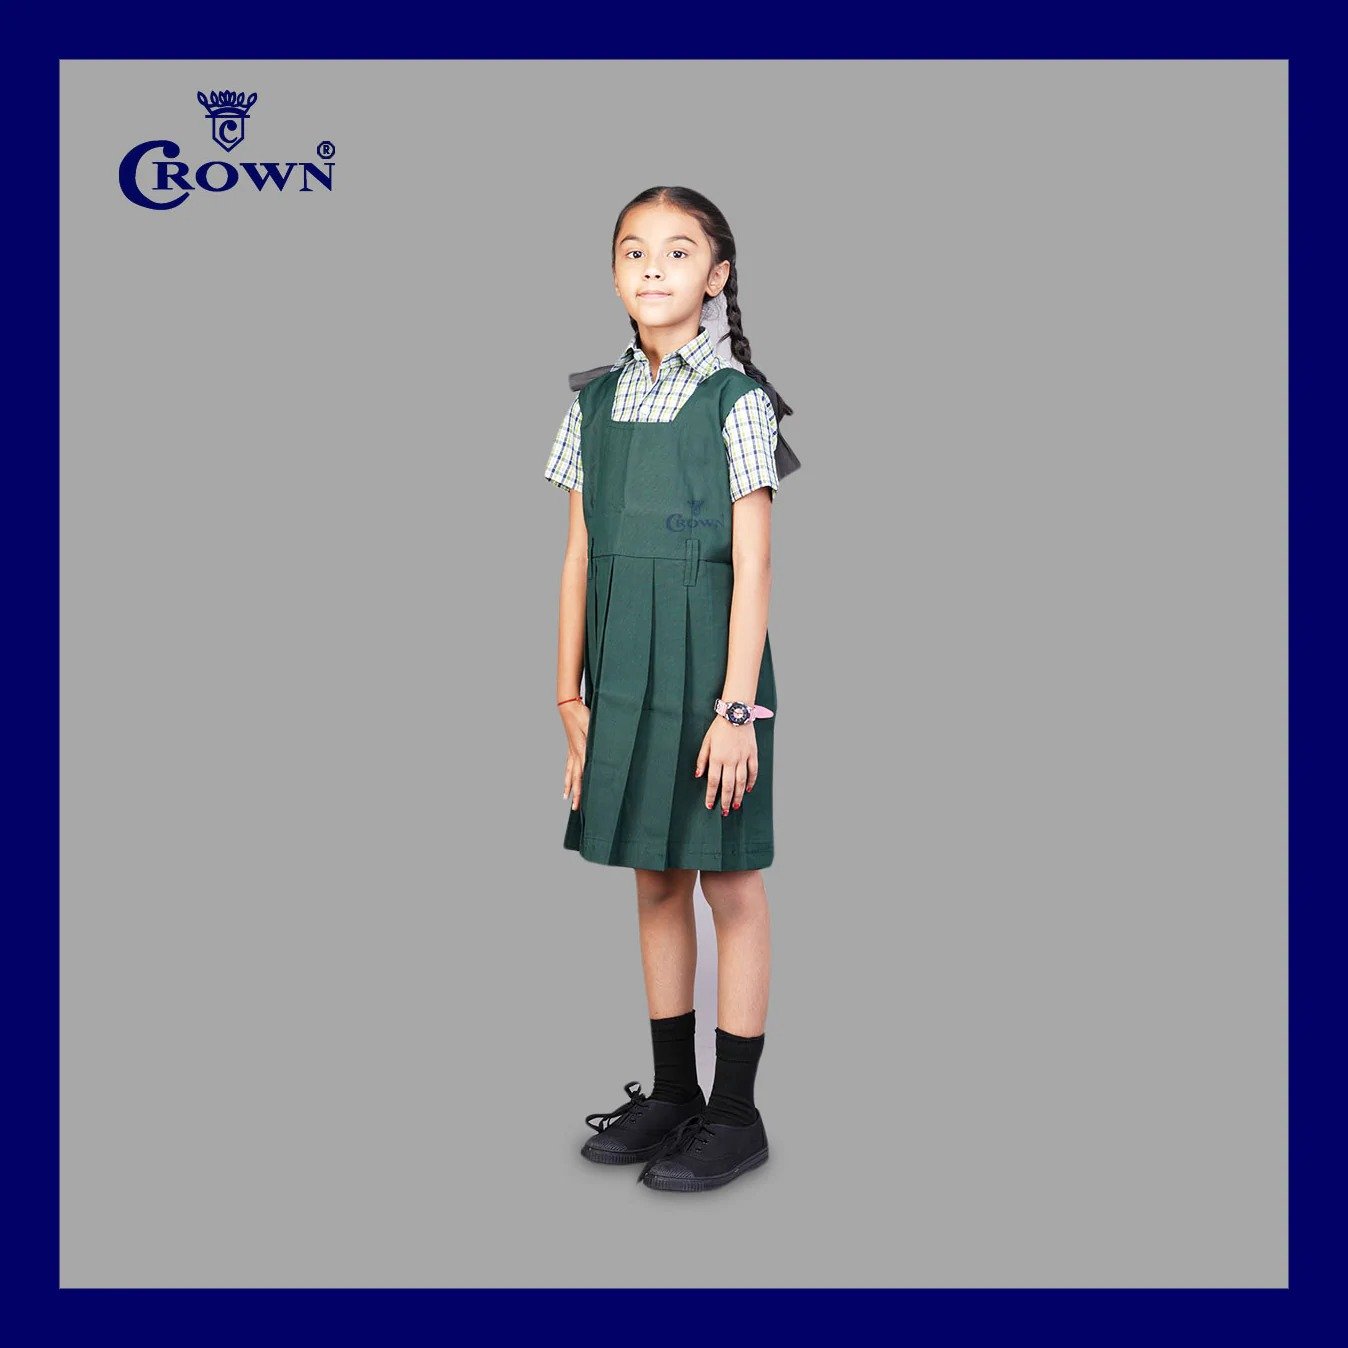 Crown TN Govt 1 - 5thStd Bottle Green Colour Pinafore (4-5 Years)